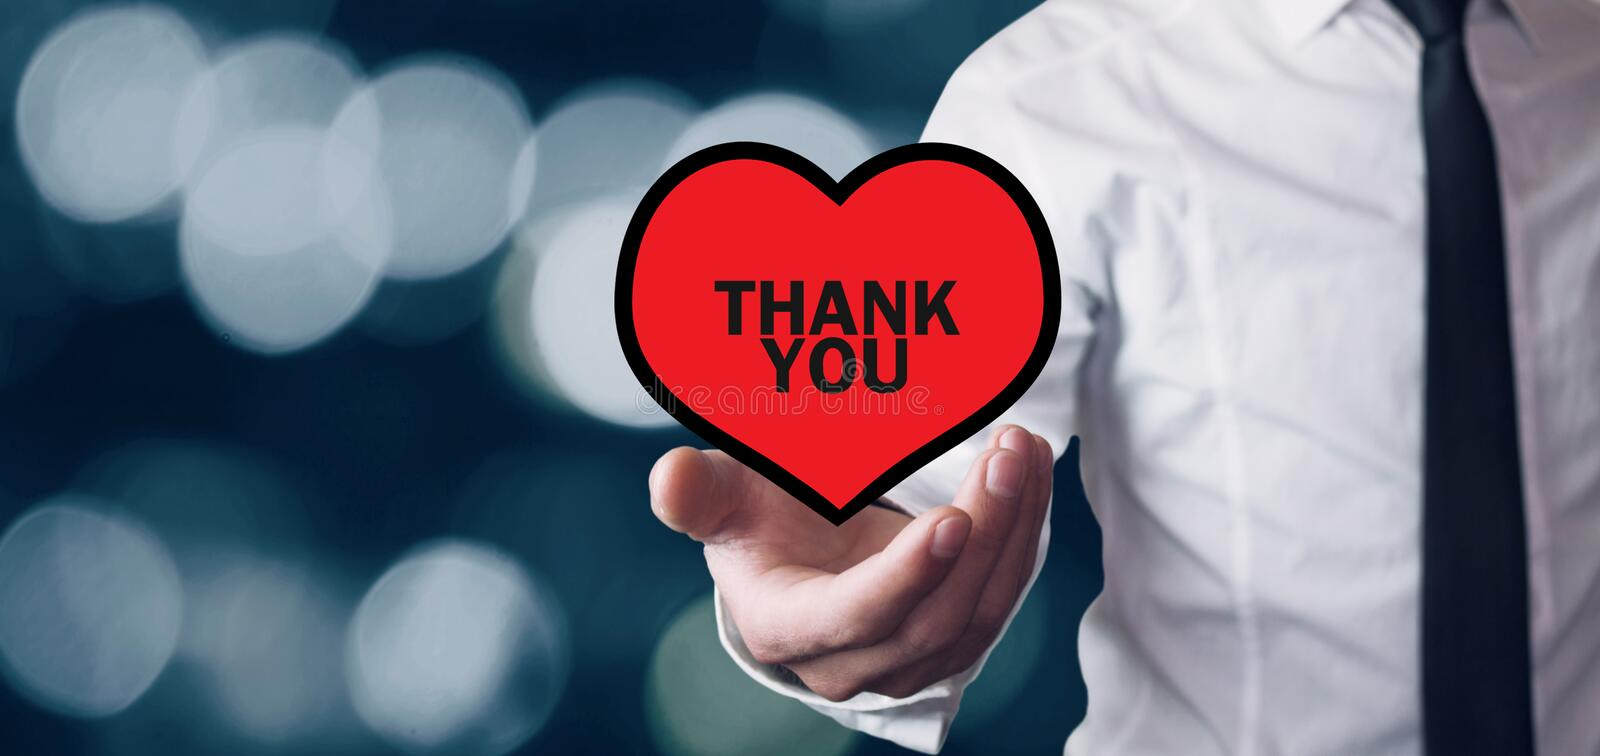 Man holding heart. Thank You message on a red heart stock photo